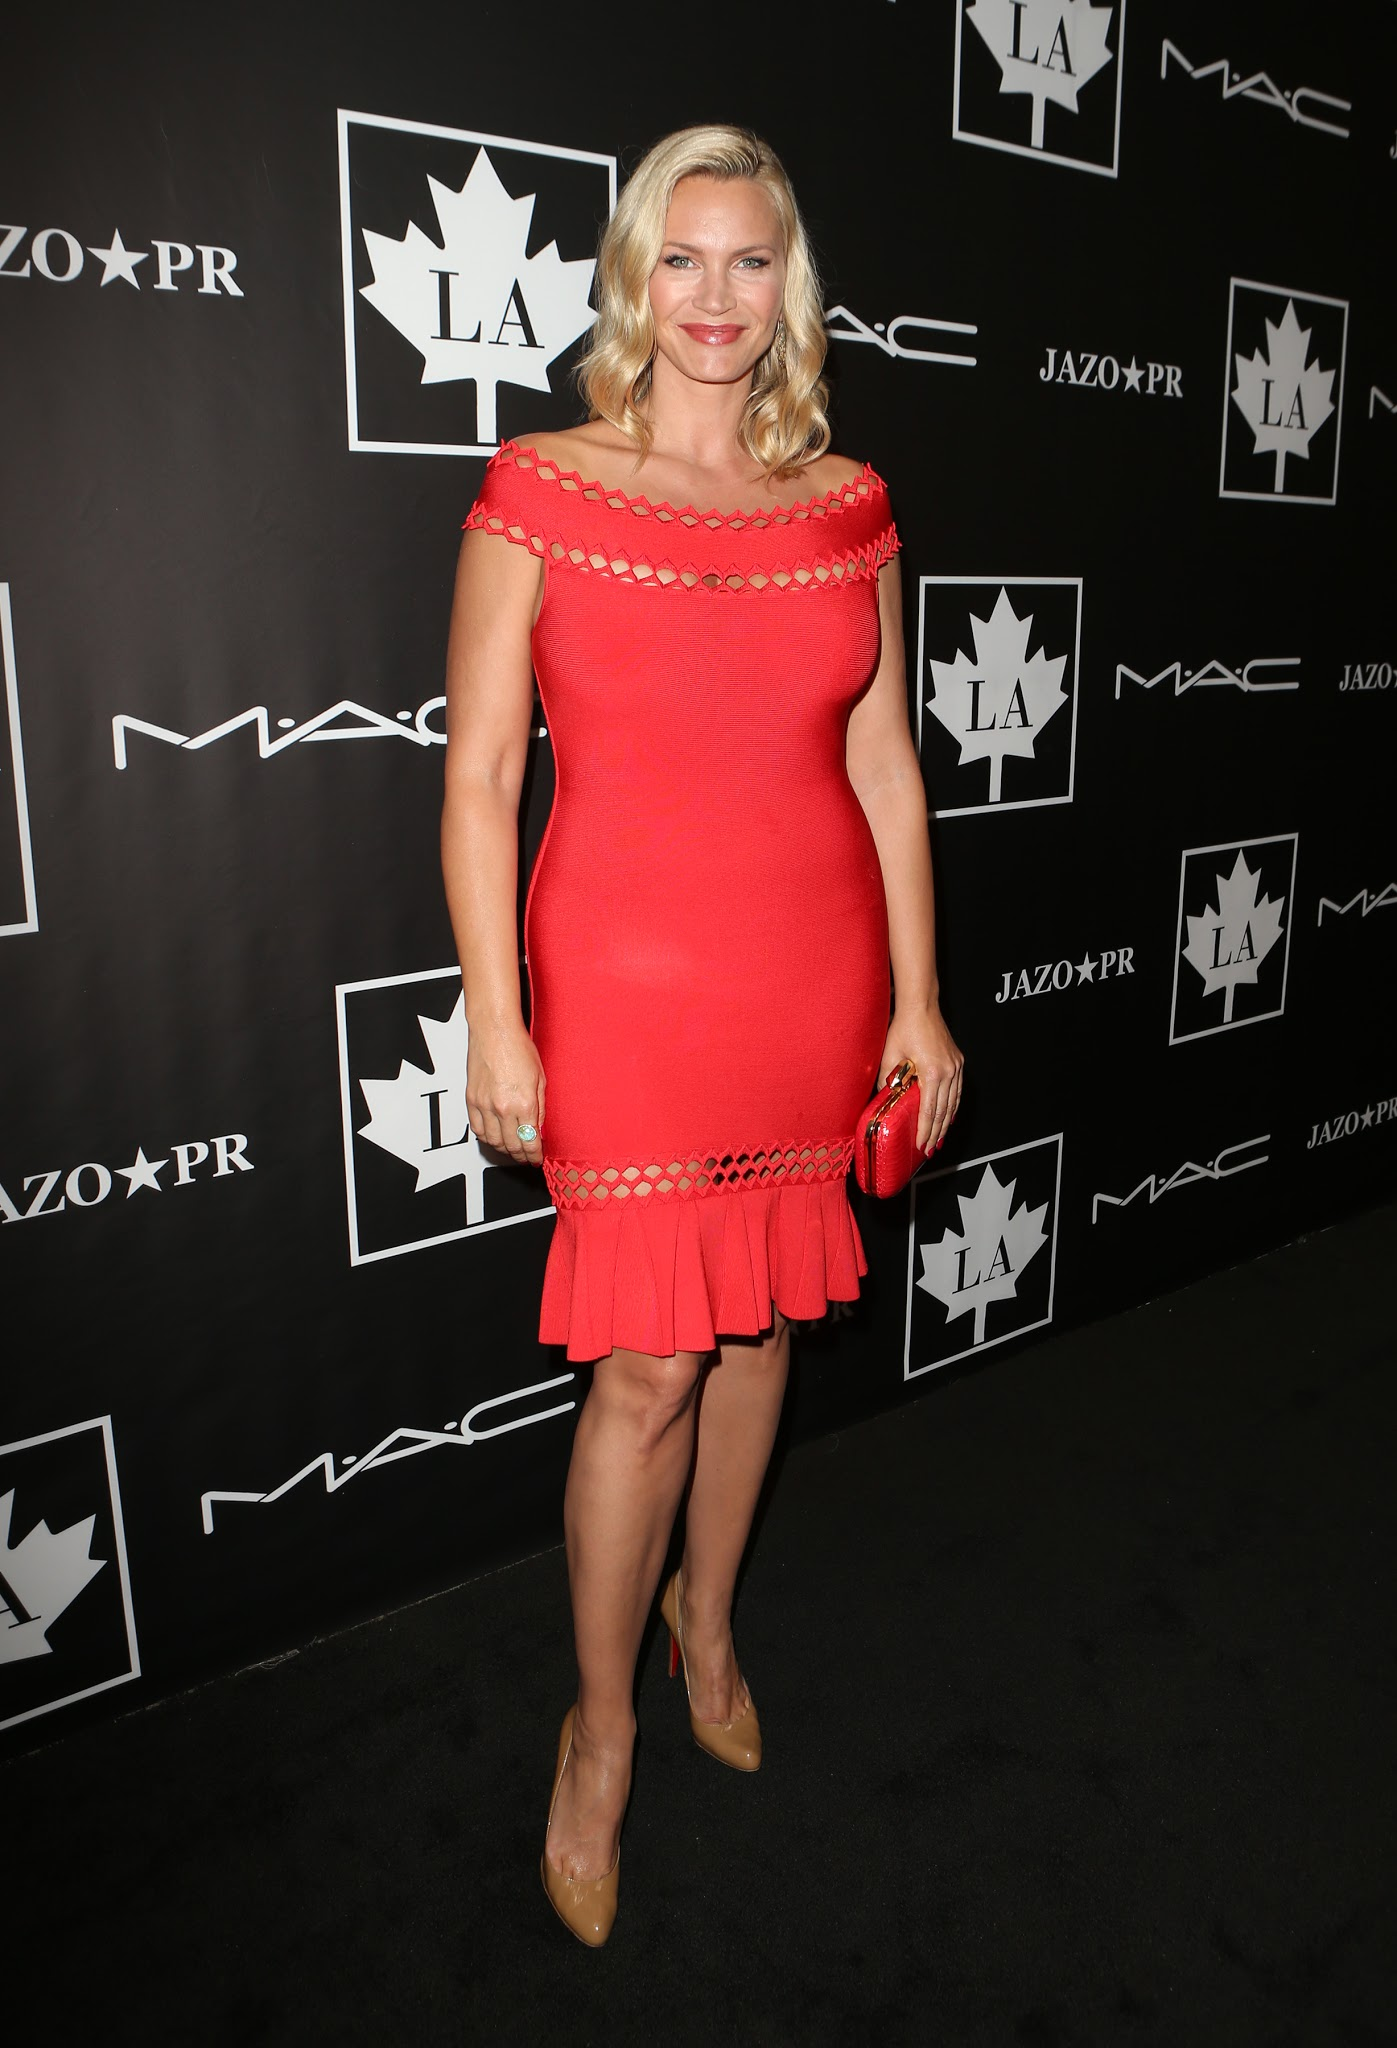 The Toe Cleavage Blog: Red - Natasha Henstridge